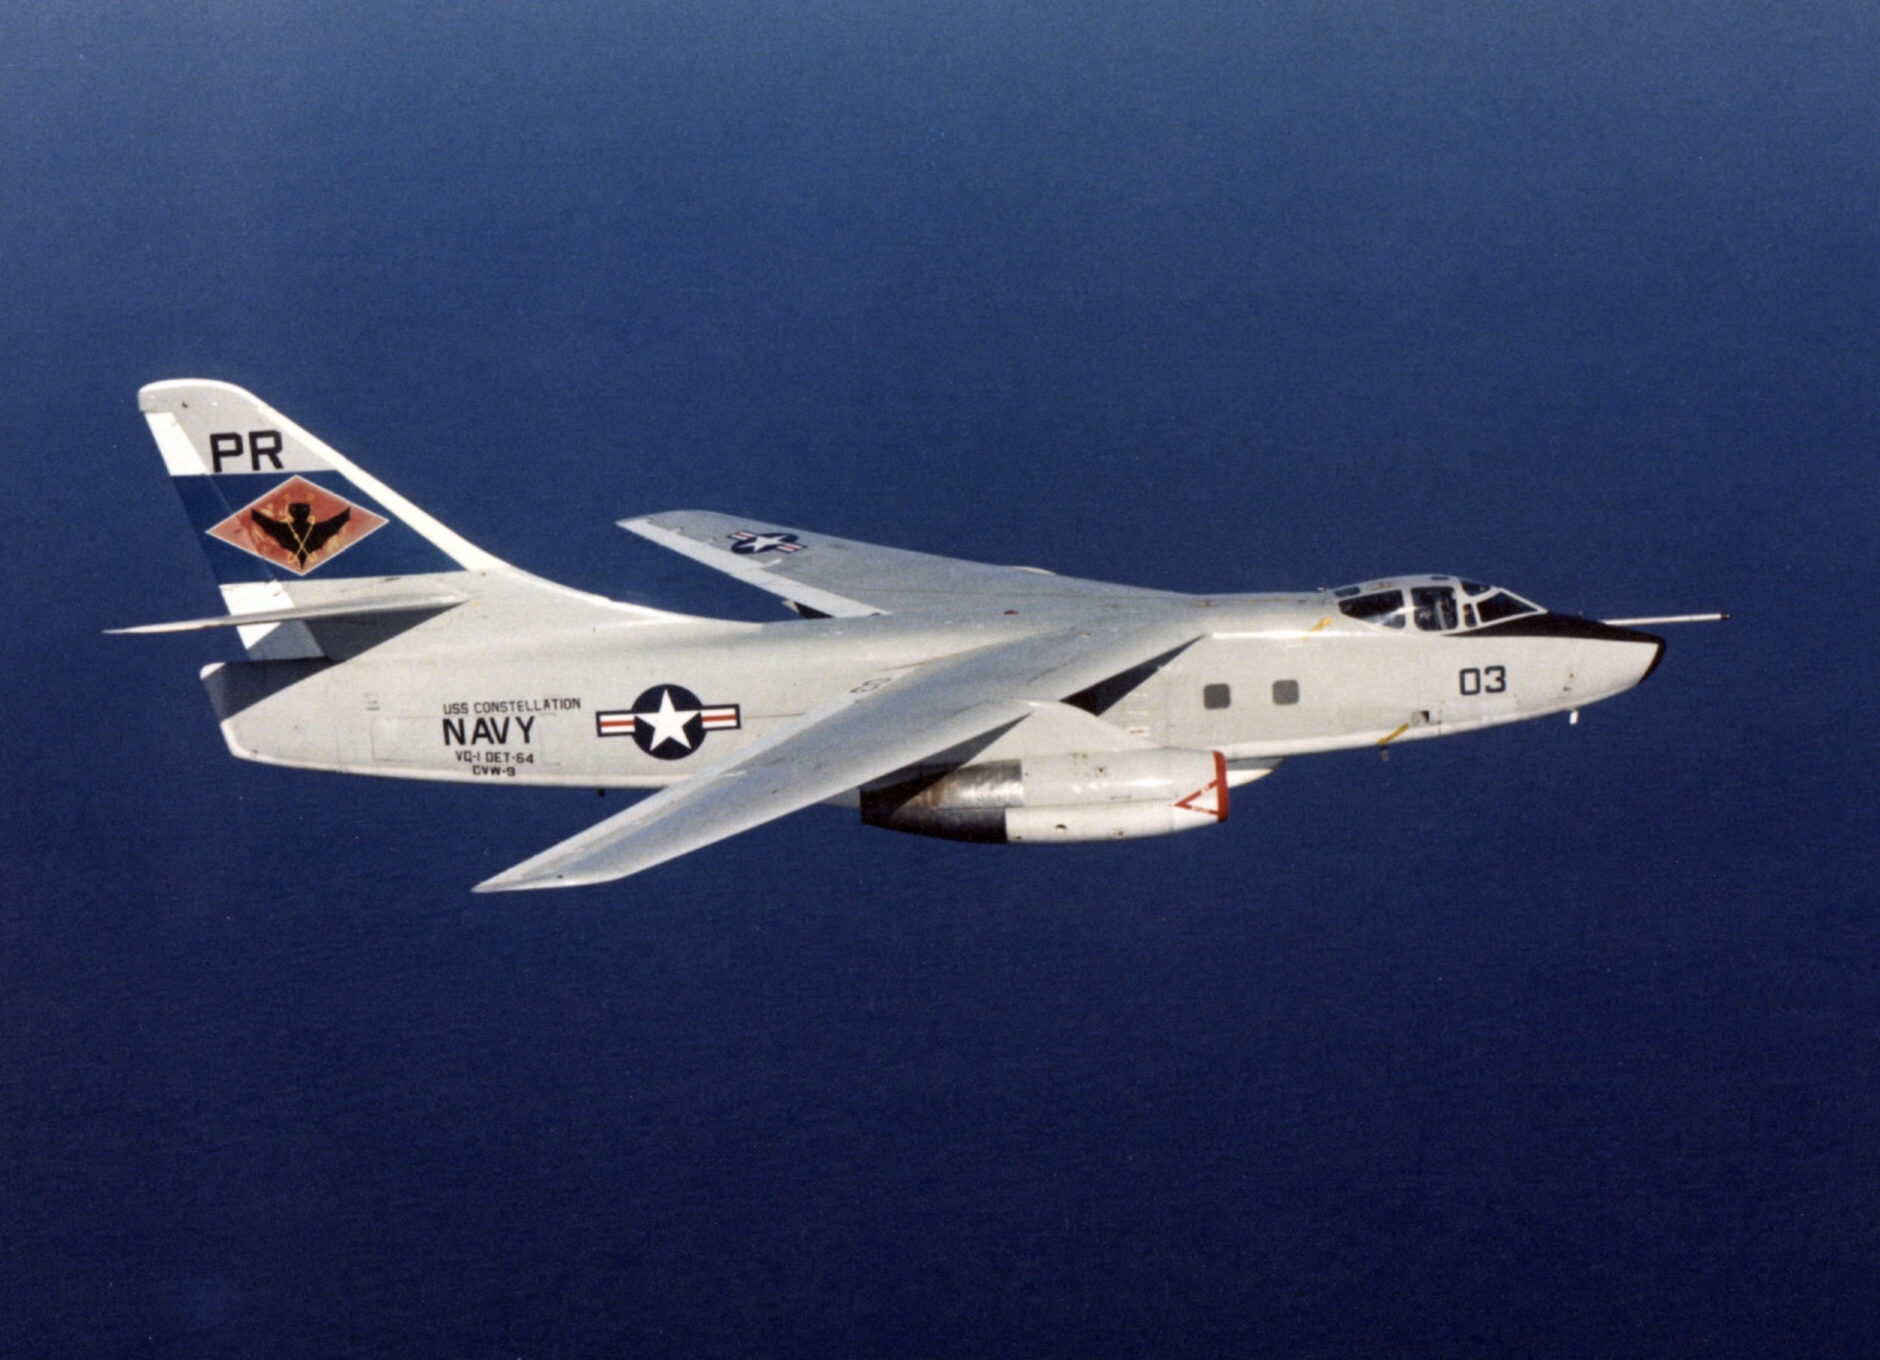 Douglas A-3 Skywarrior - Wikipedia